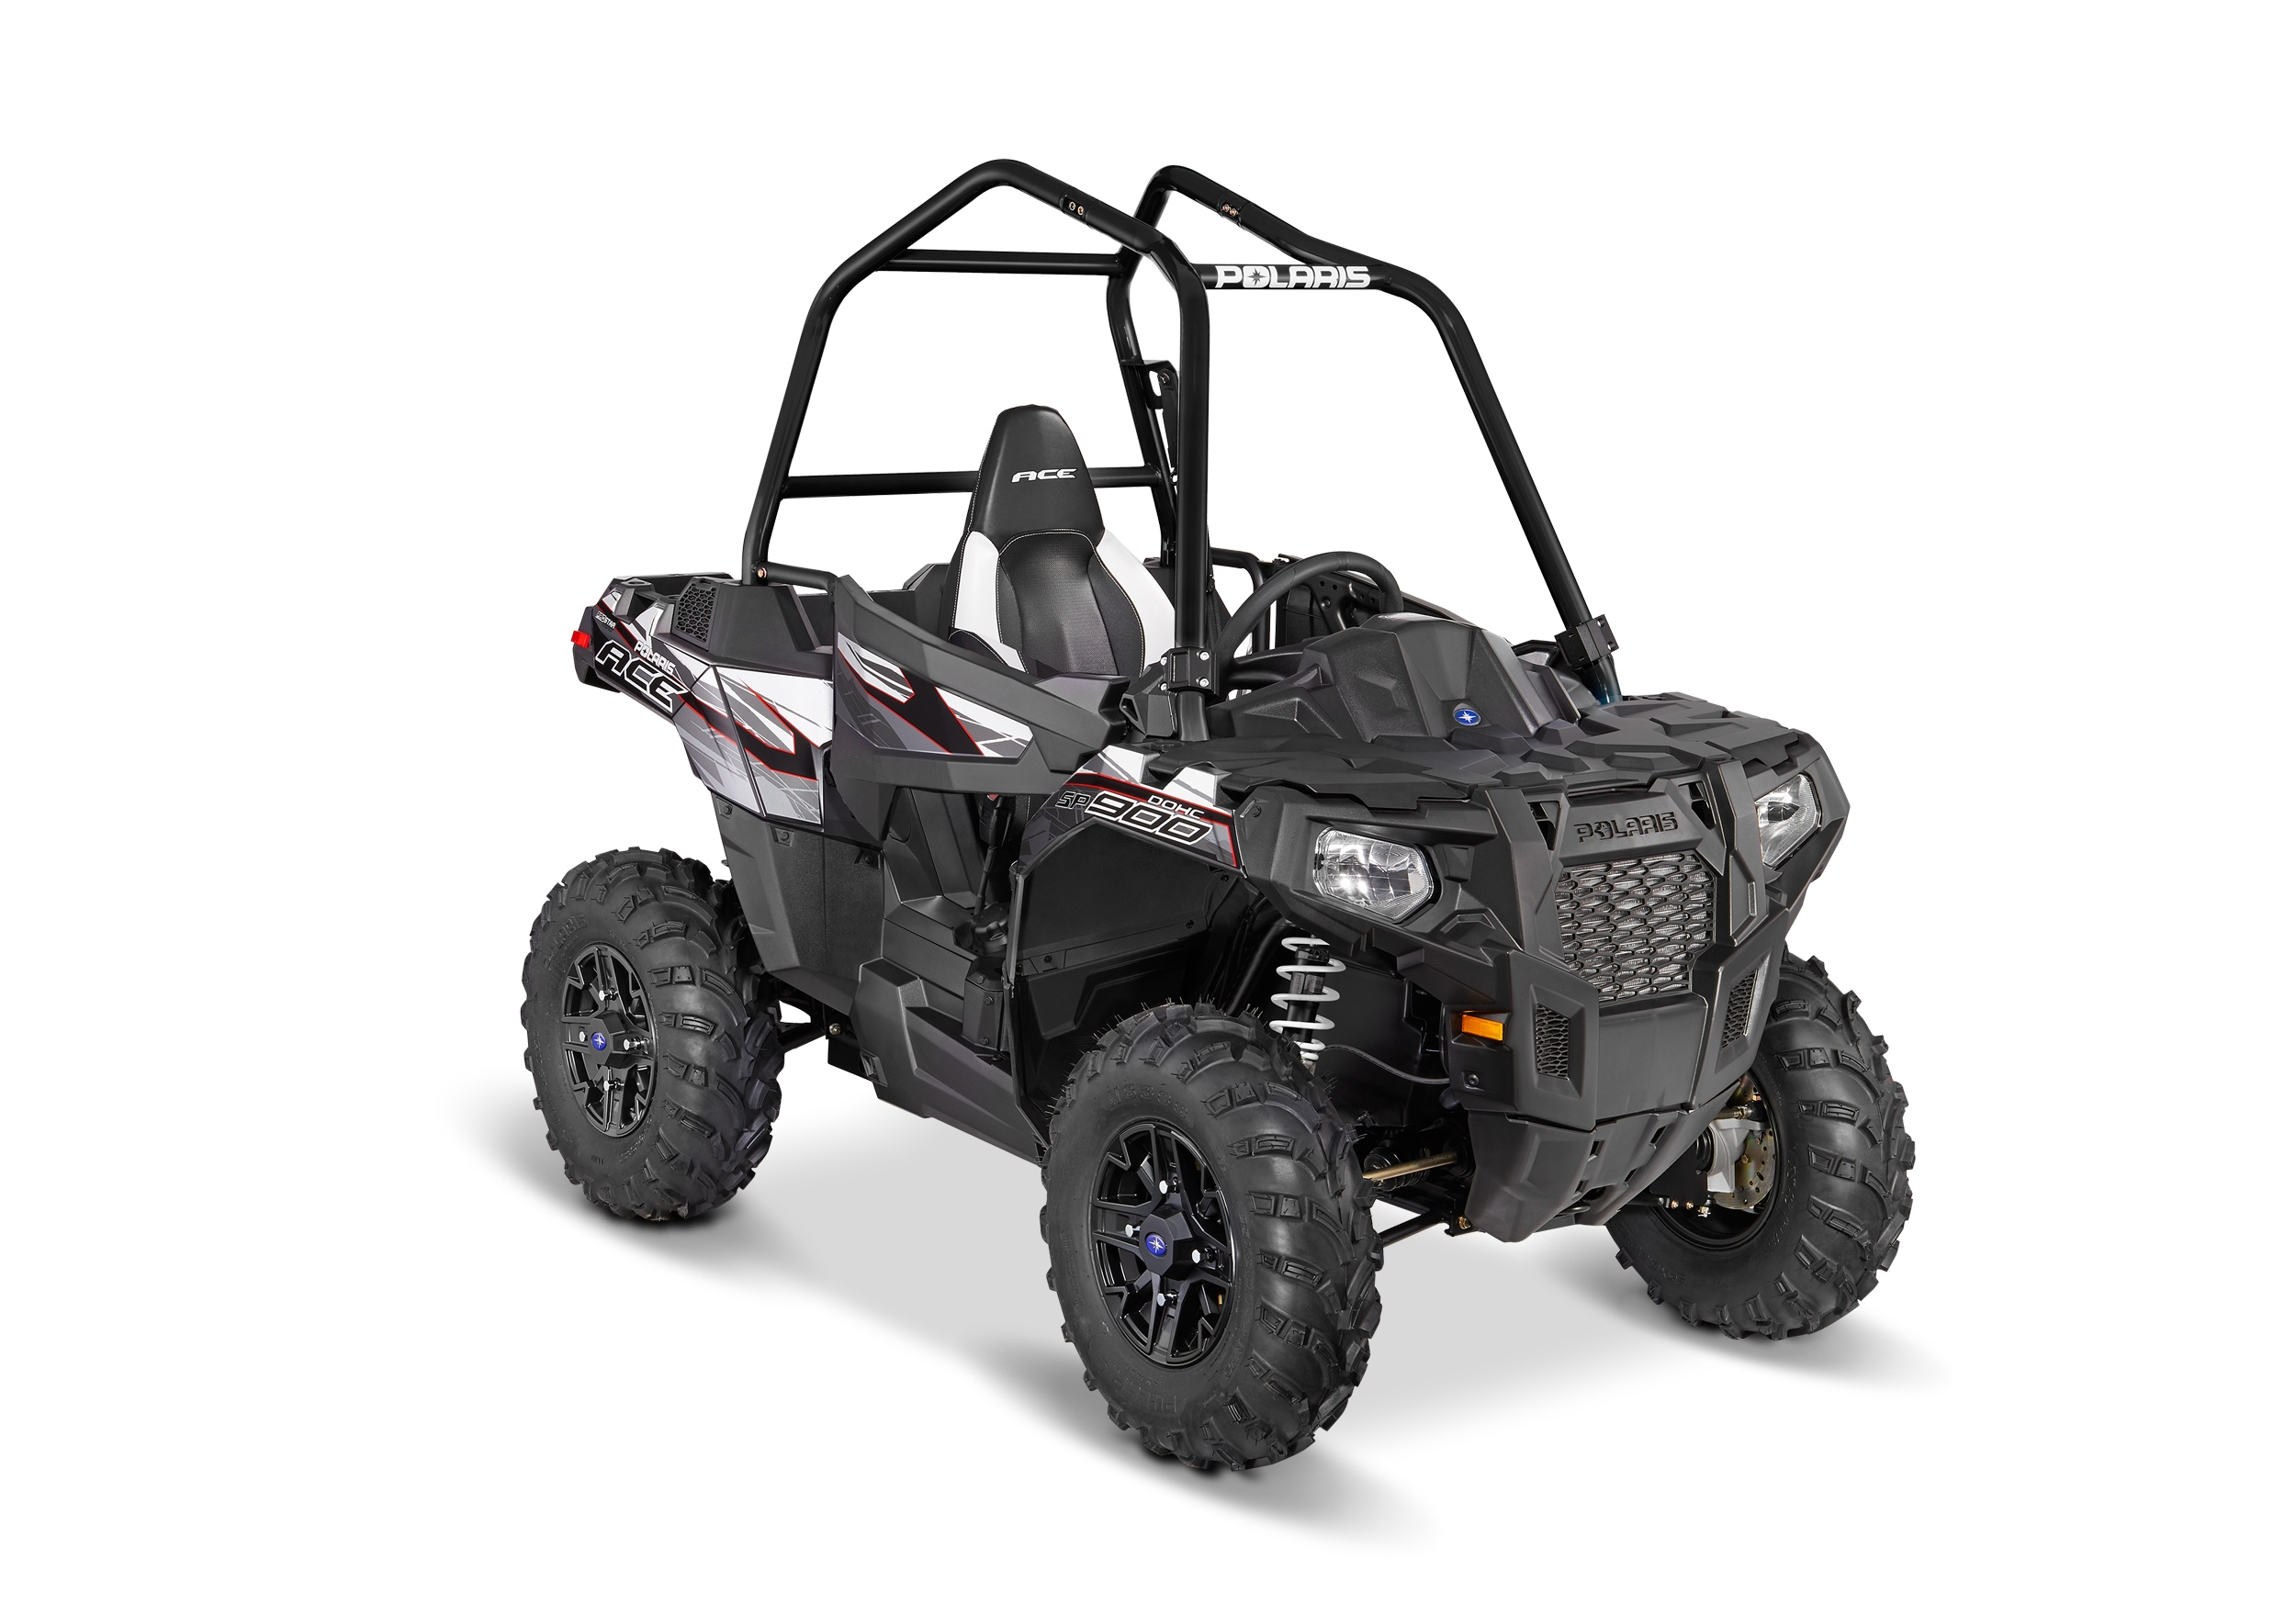 All New Polaris Xp Turbo Rzr S 1000 Ace 900 And More